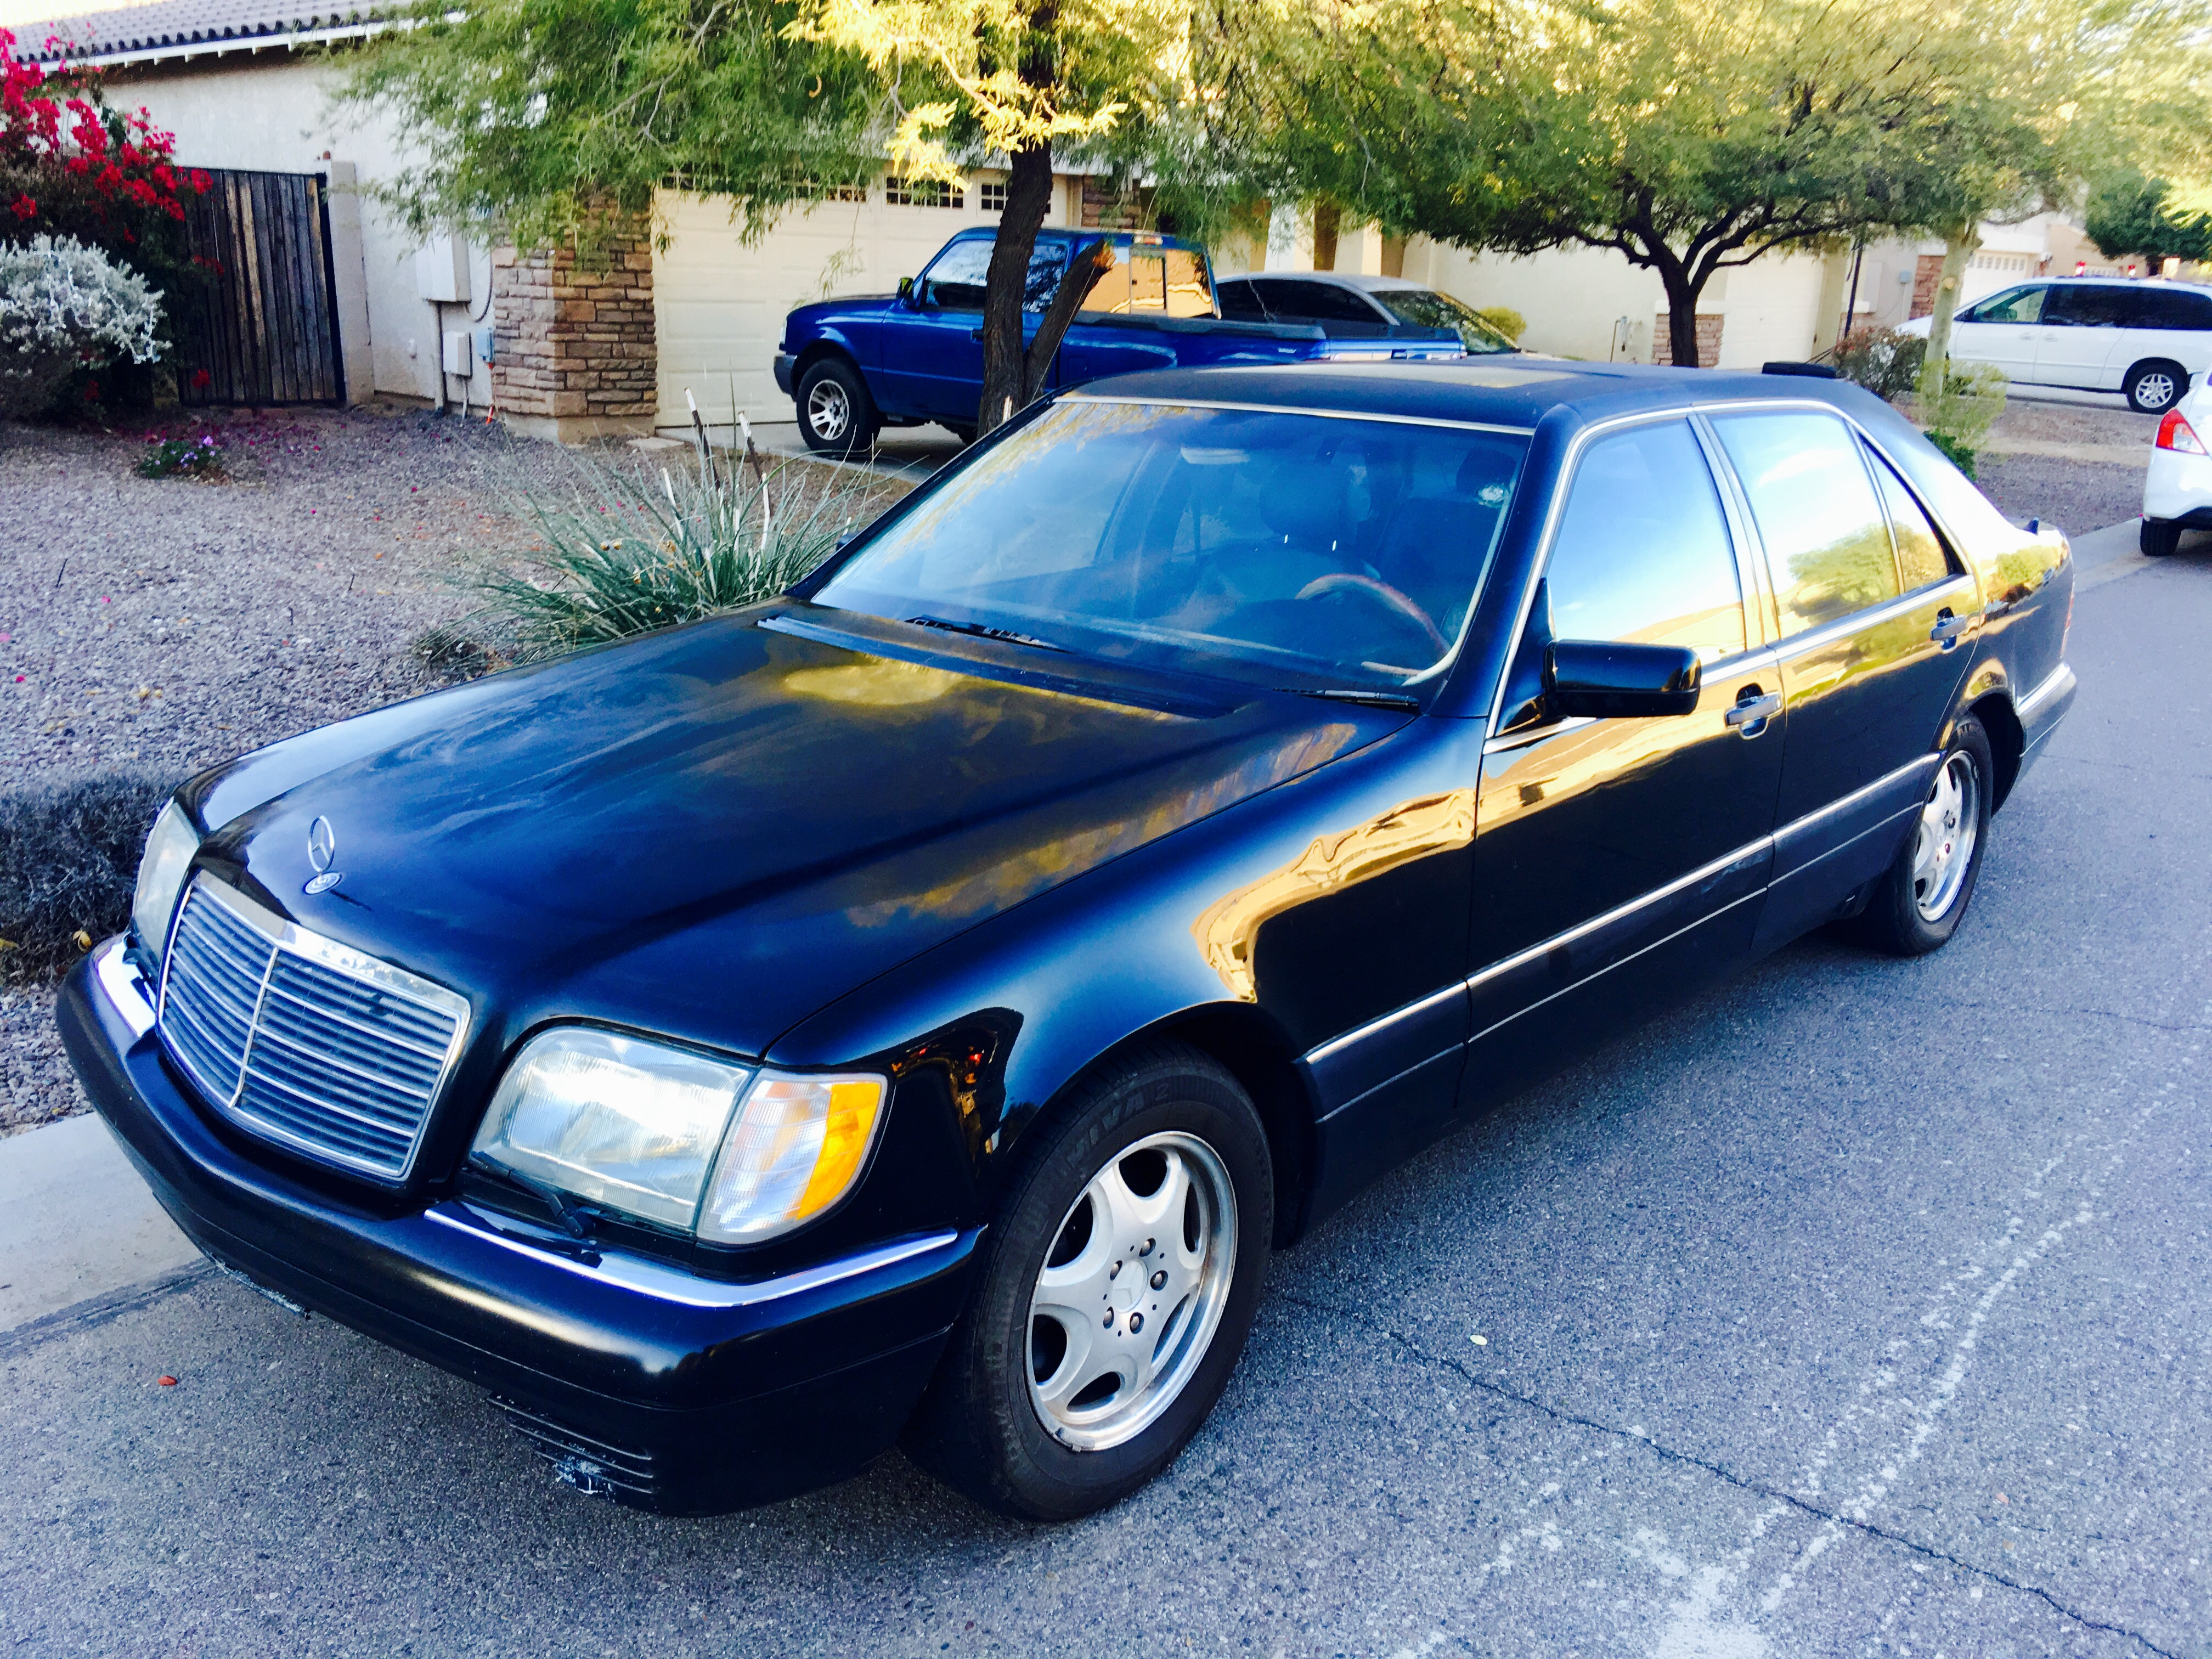 1997 mercedes benz s class door removal service manual for Sell mercedes benz